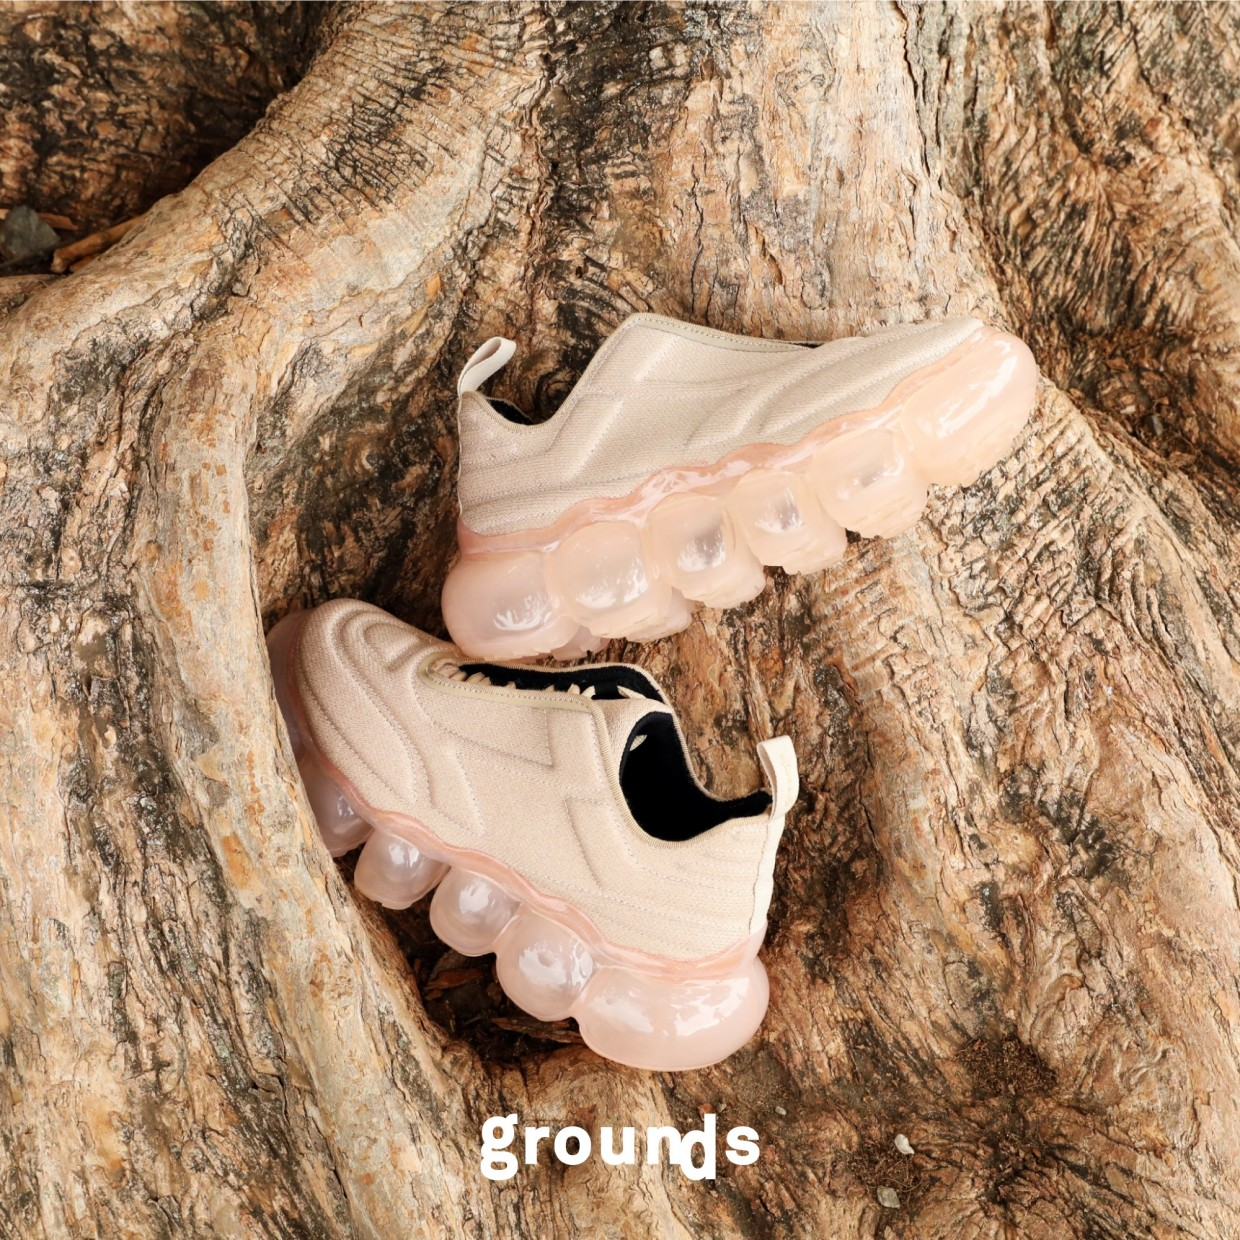 grounds POP UP STORE